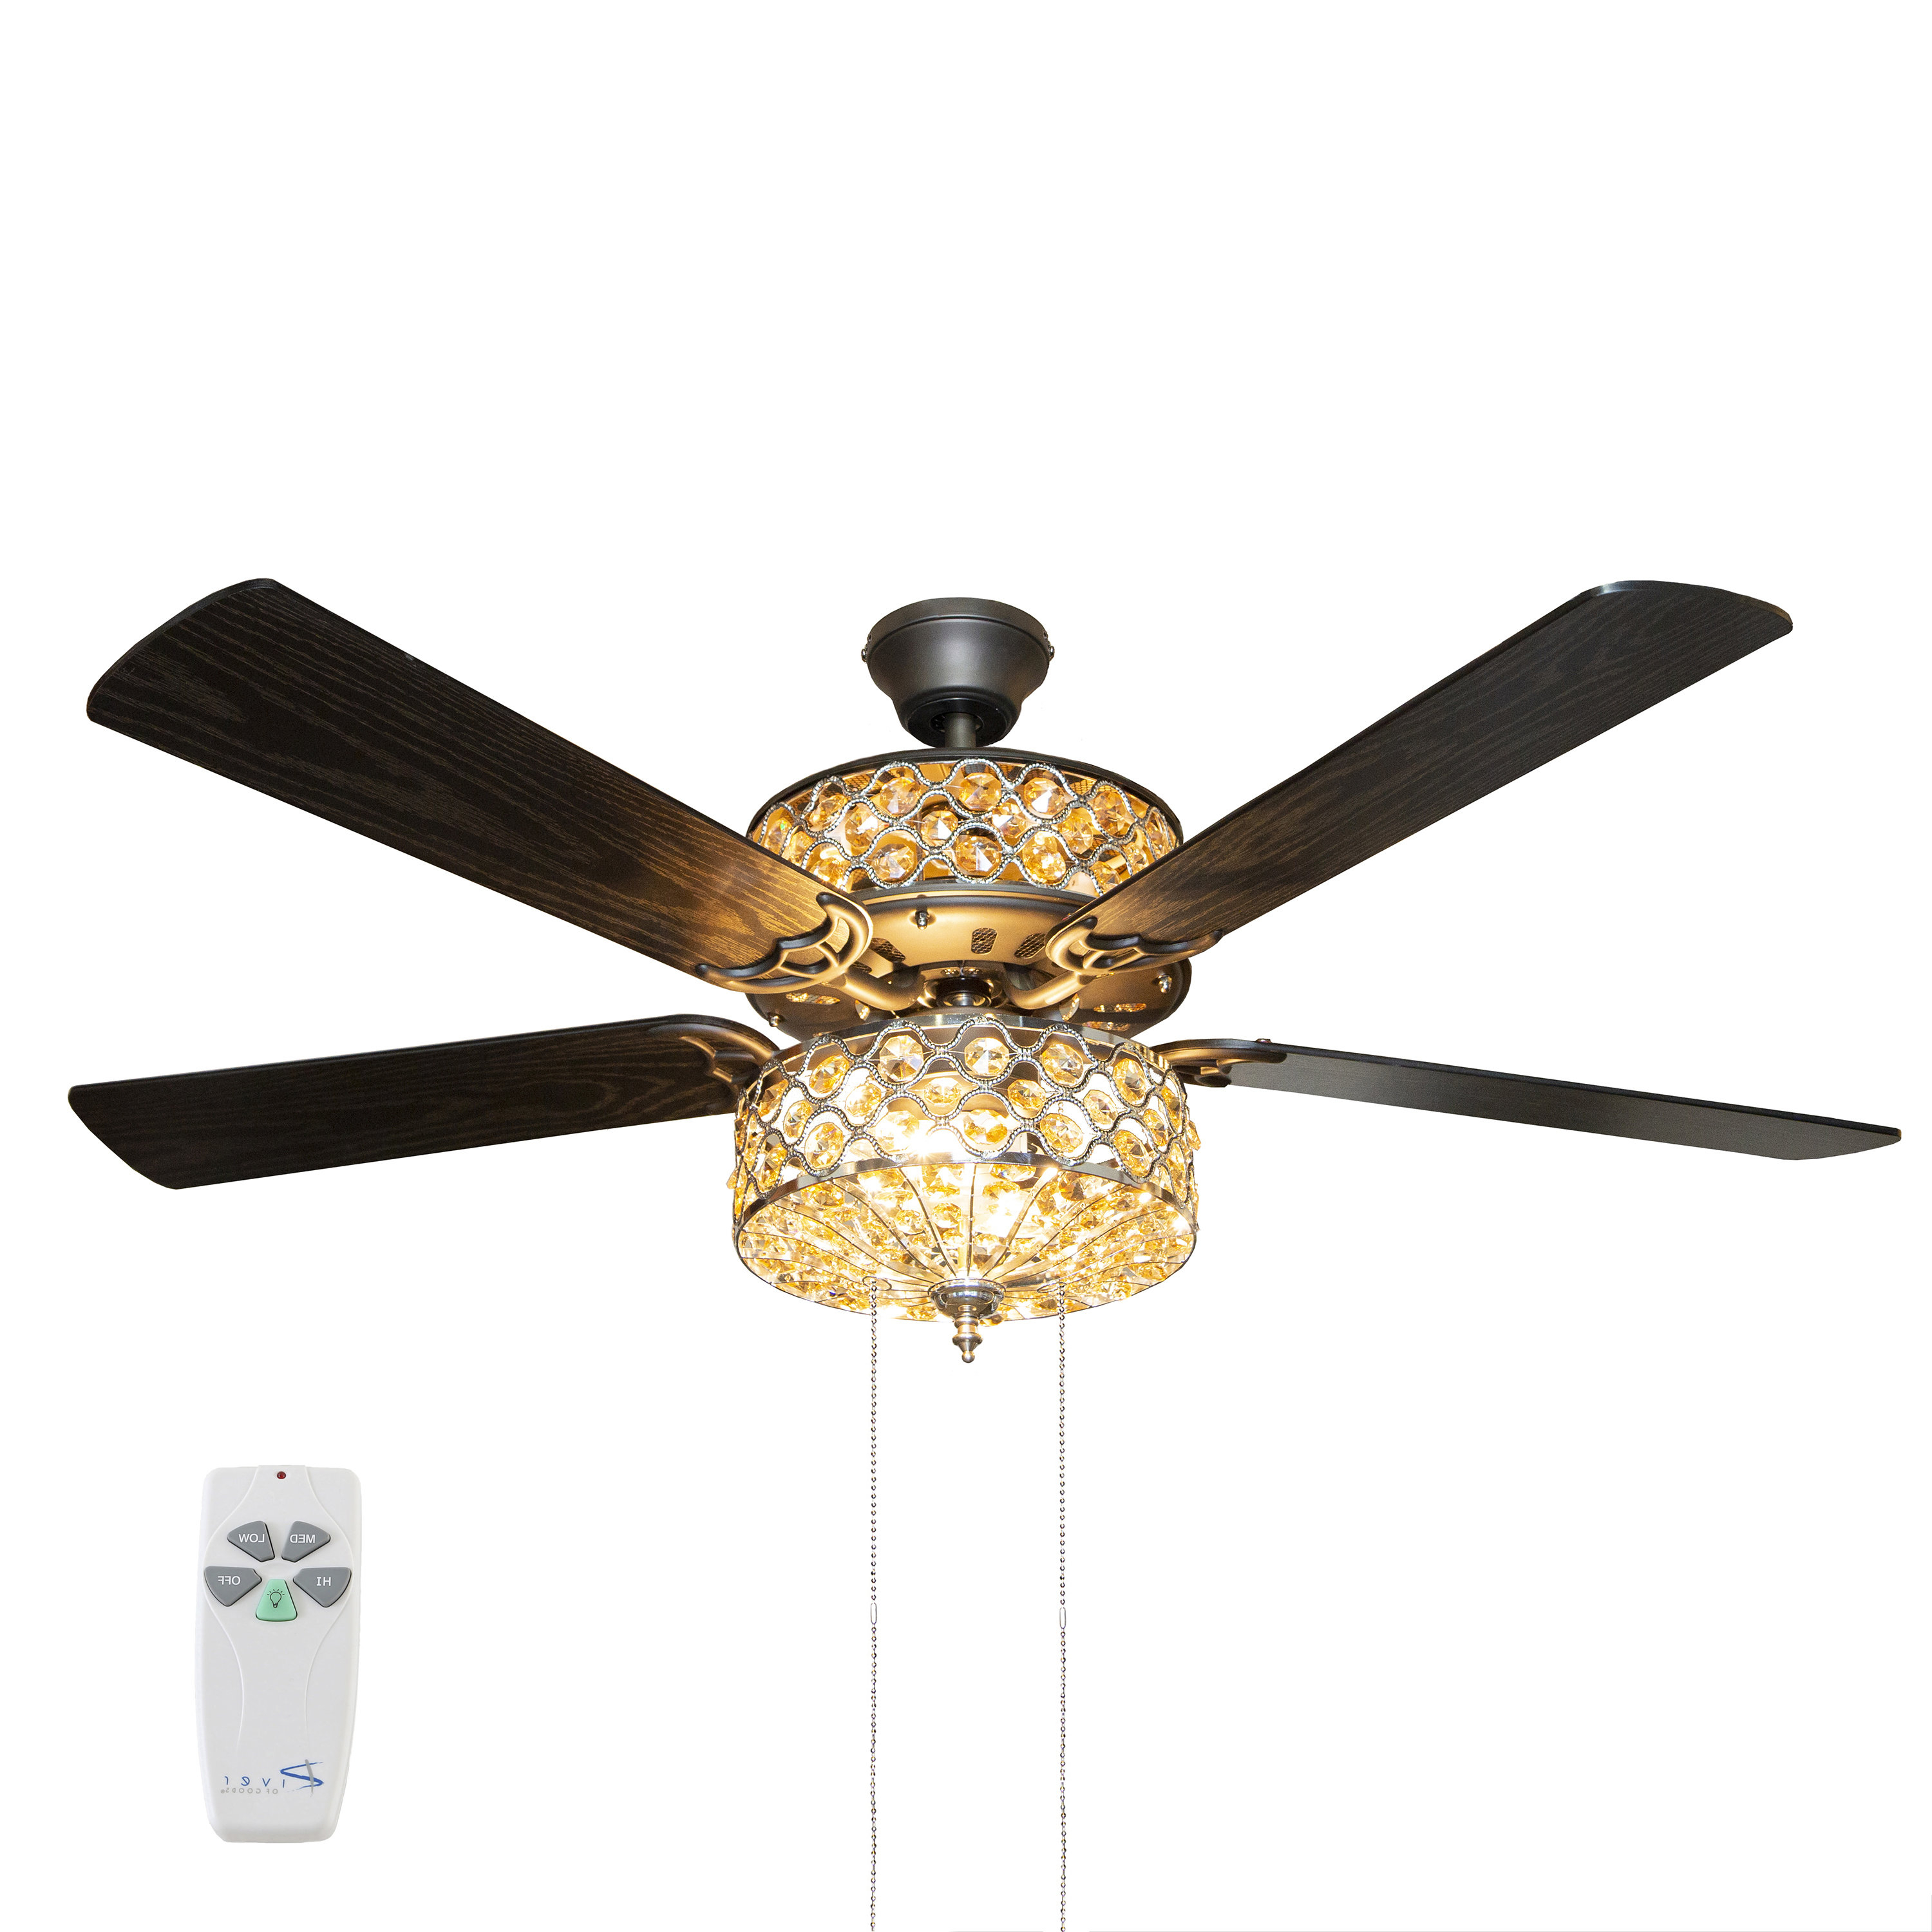 """52"""" Irven 5 Blade Ceiling Fan With Remote, Light Kit Included Throughout Current 5 Blade Ceiling Fans With Remote (View 11 of 20)"""